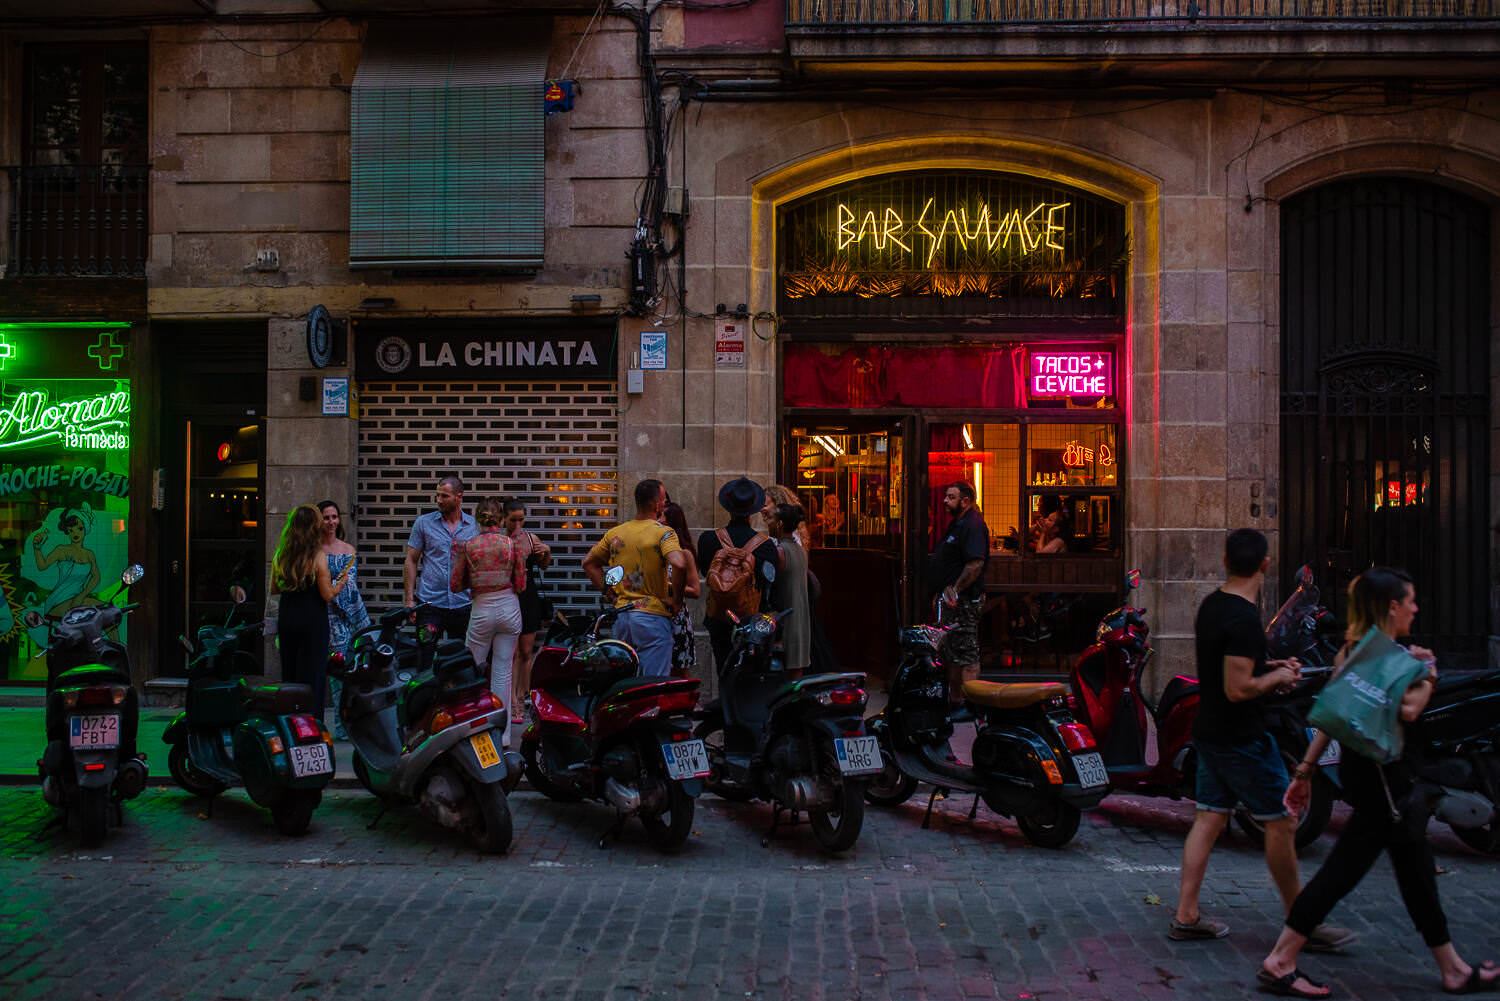 Wedding guests are waiting to enter the bar for a rehearsal party in Bar Sauvage in Barcelona